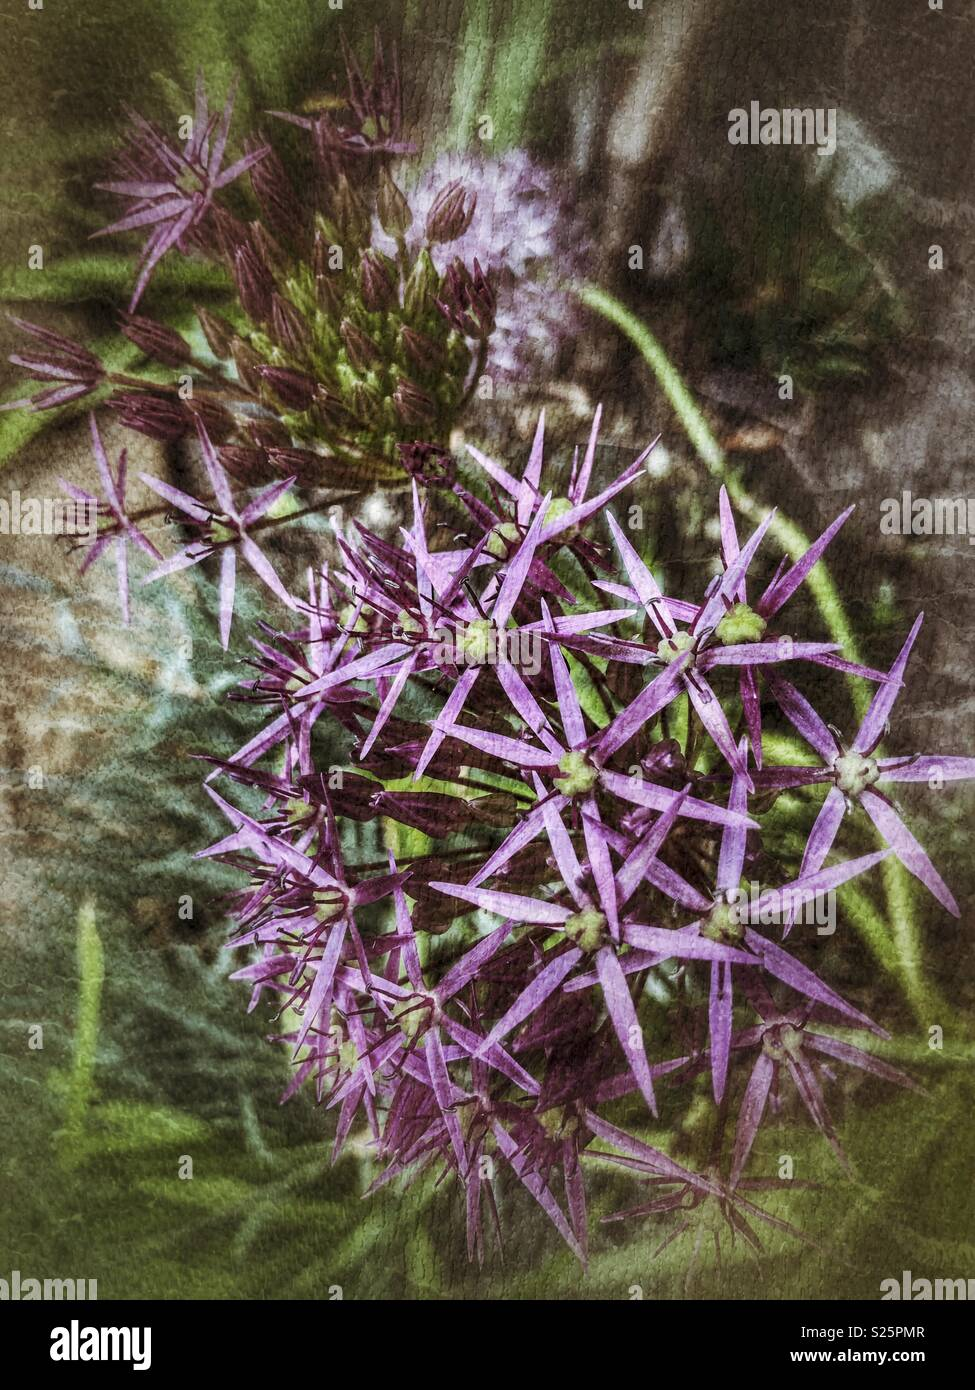 Flowered purple Allium 'Firmament' with filter - Stock Image